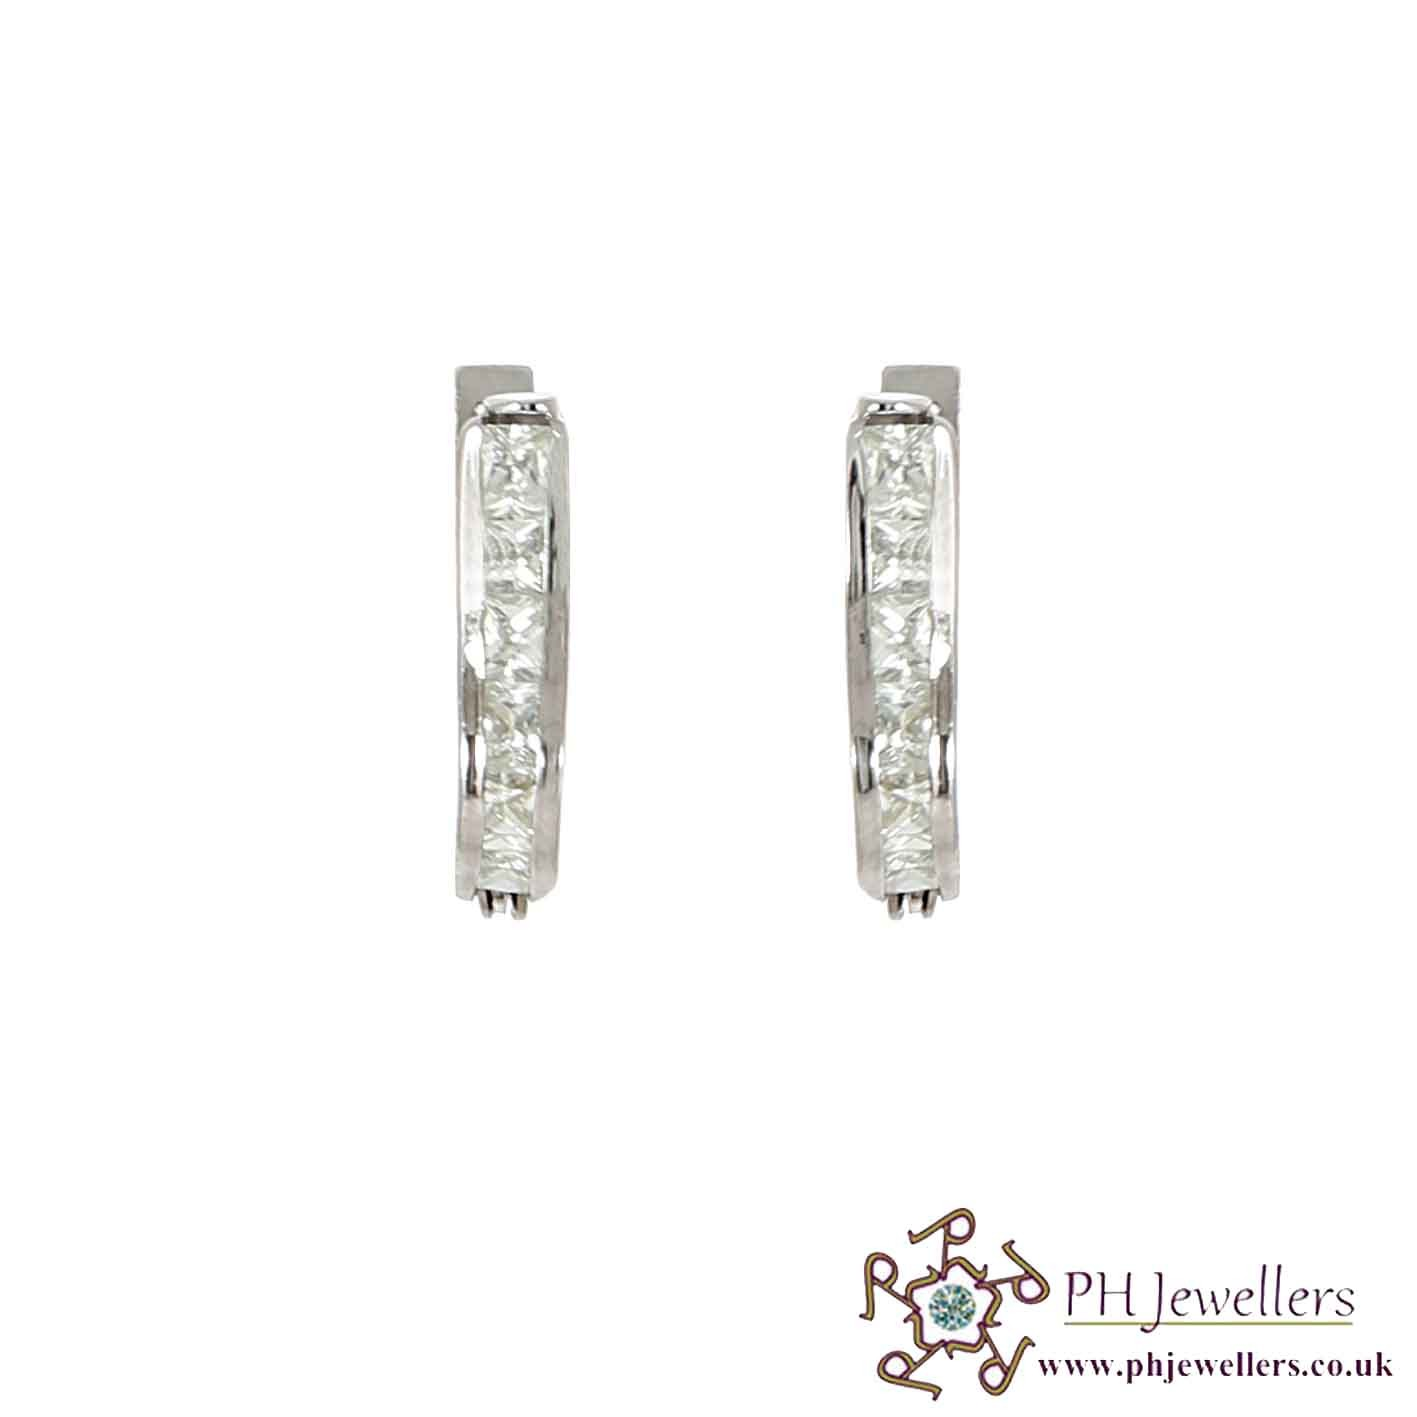 18CT 750 Hallmark White Gold Clip On Earrings CZ WGE3